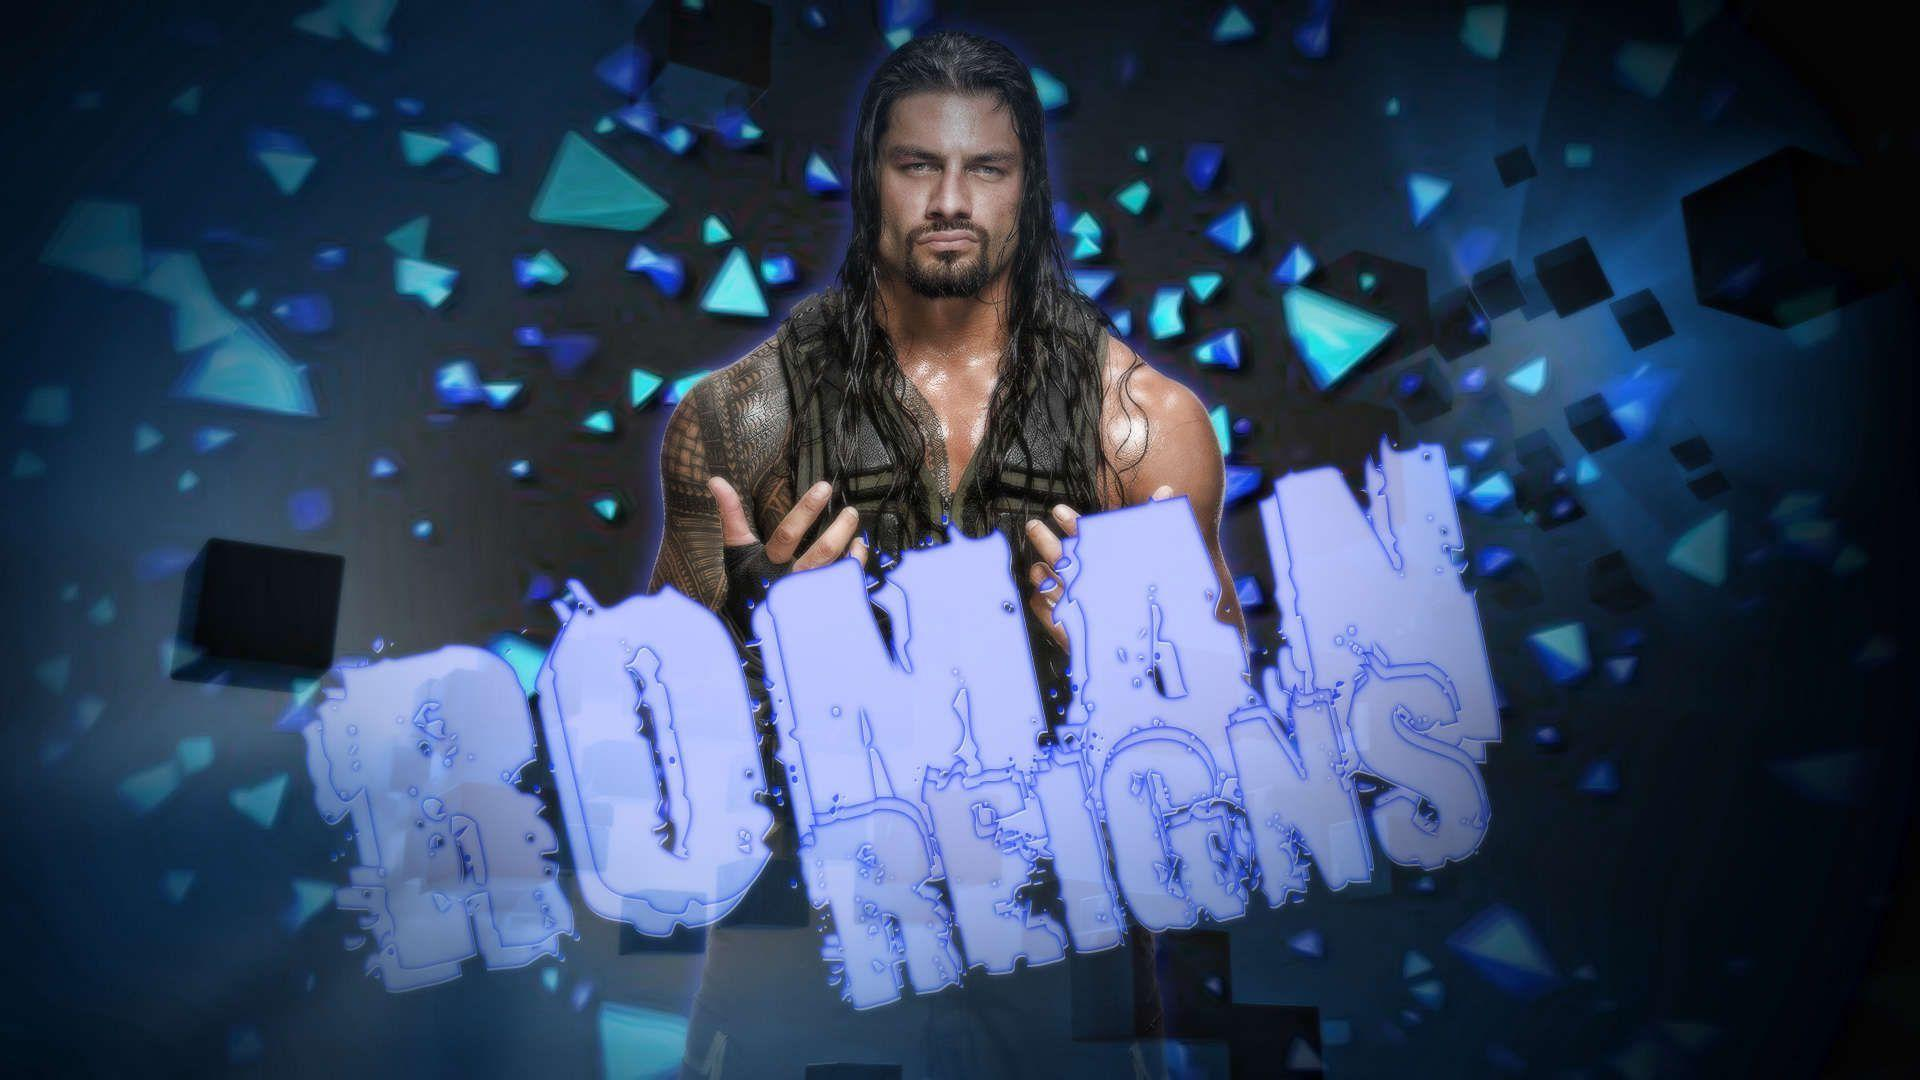 Wwe Wallpapers Roman Reigns Hd